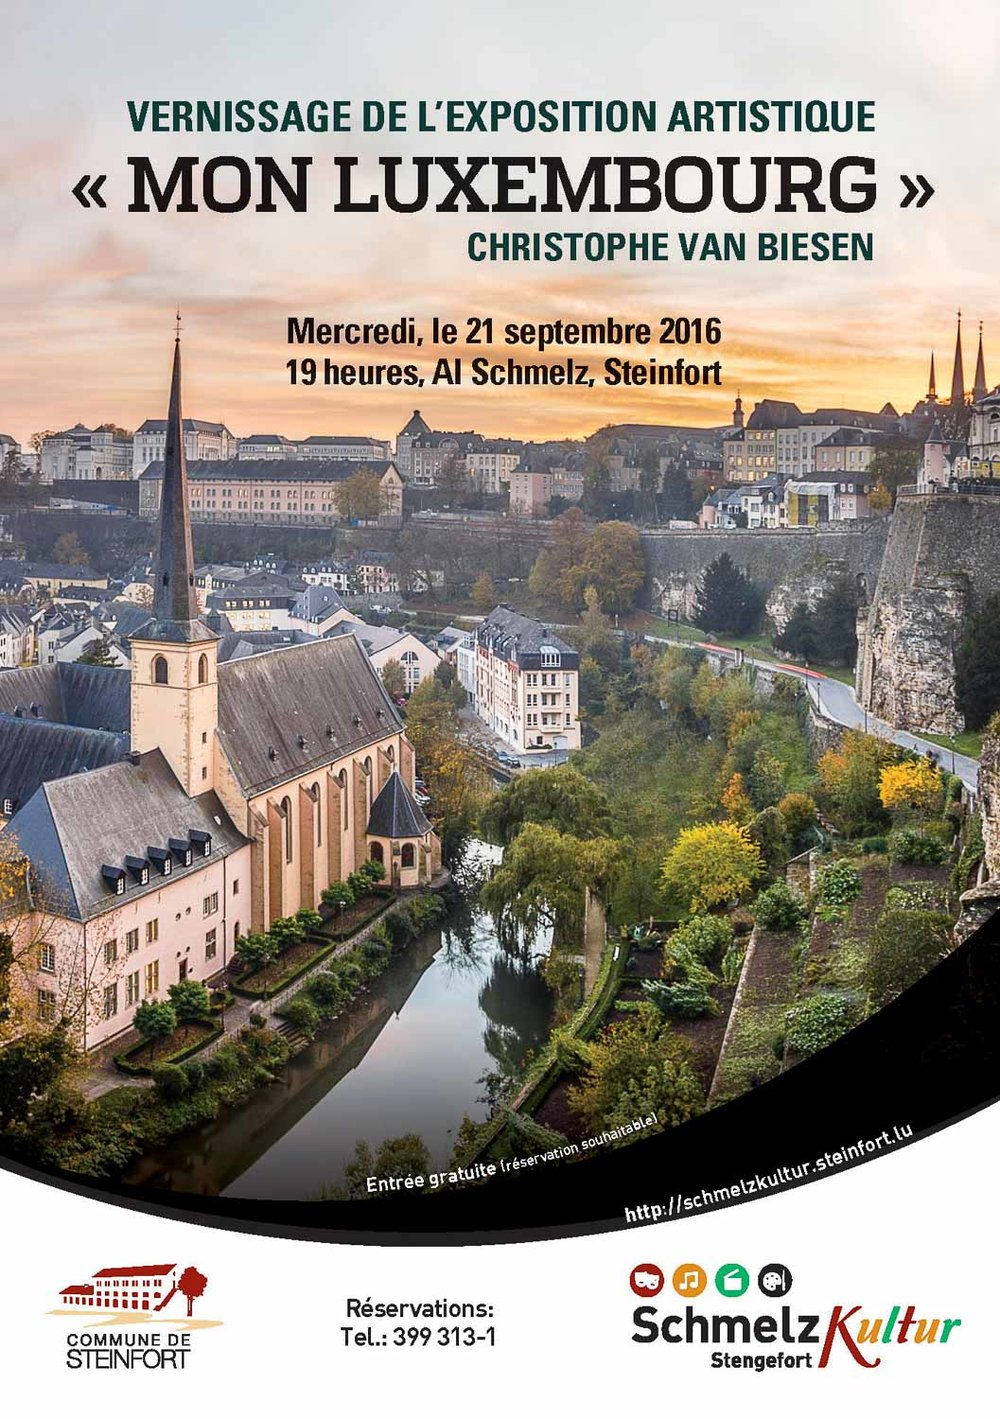 My Luxembourg Exhibition by Christophe Van Biesen at the Centre Culturel Al Schmelz in Steinfort, Luxembourg